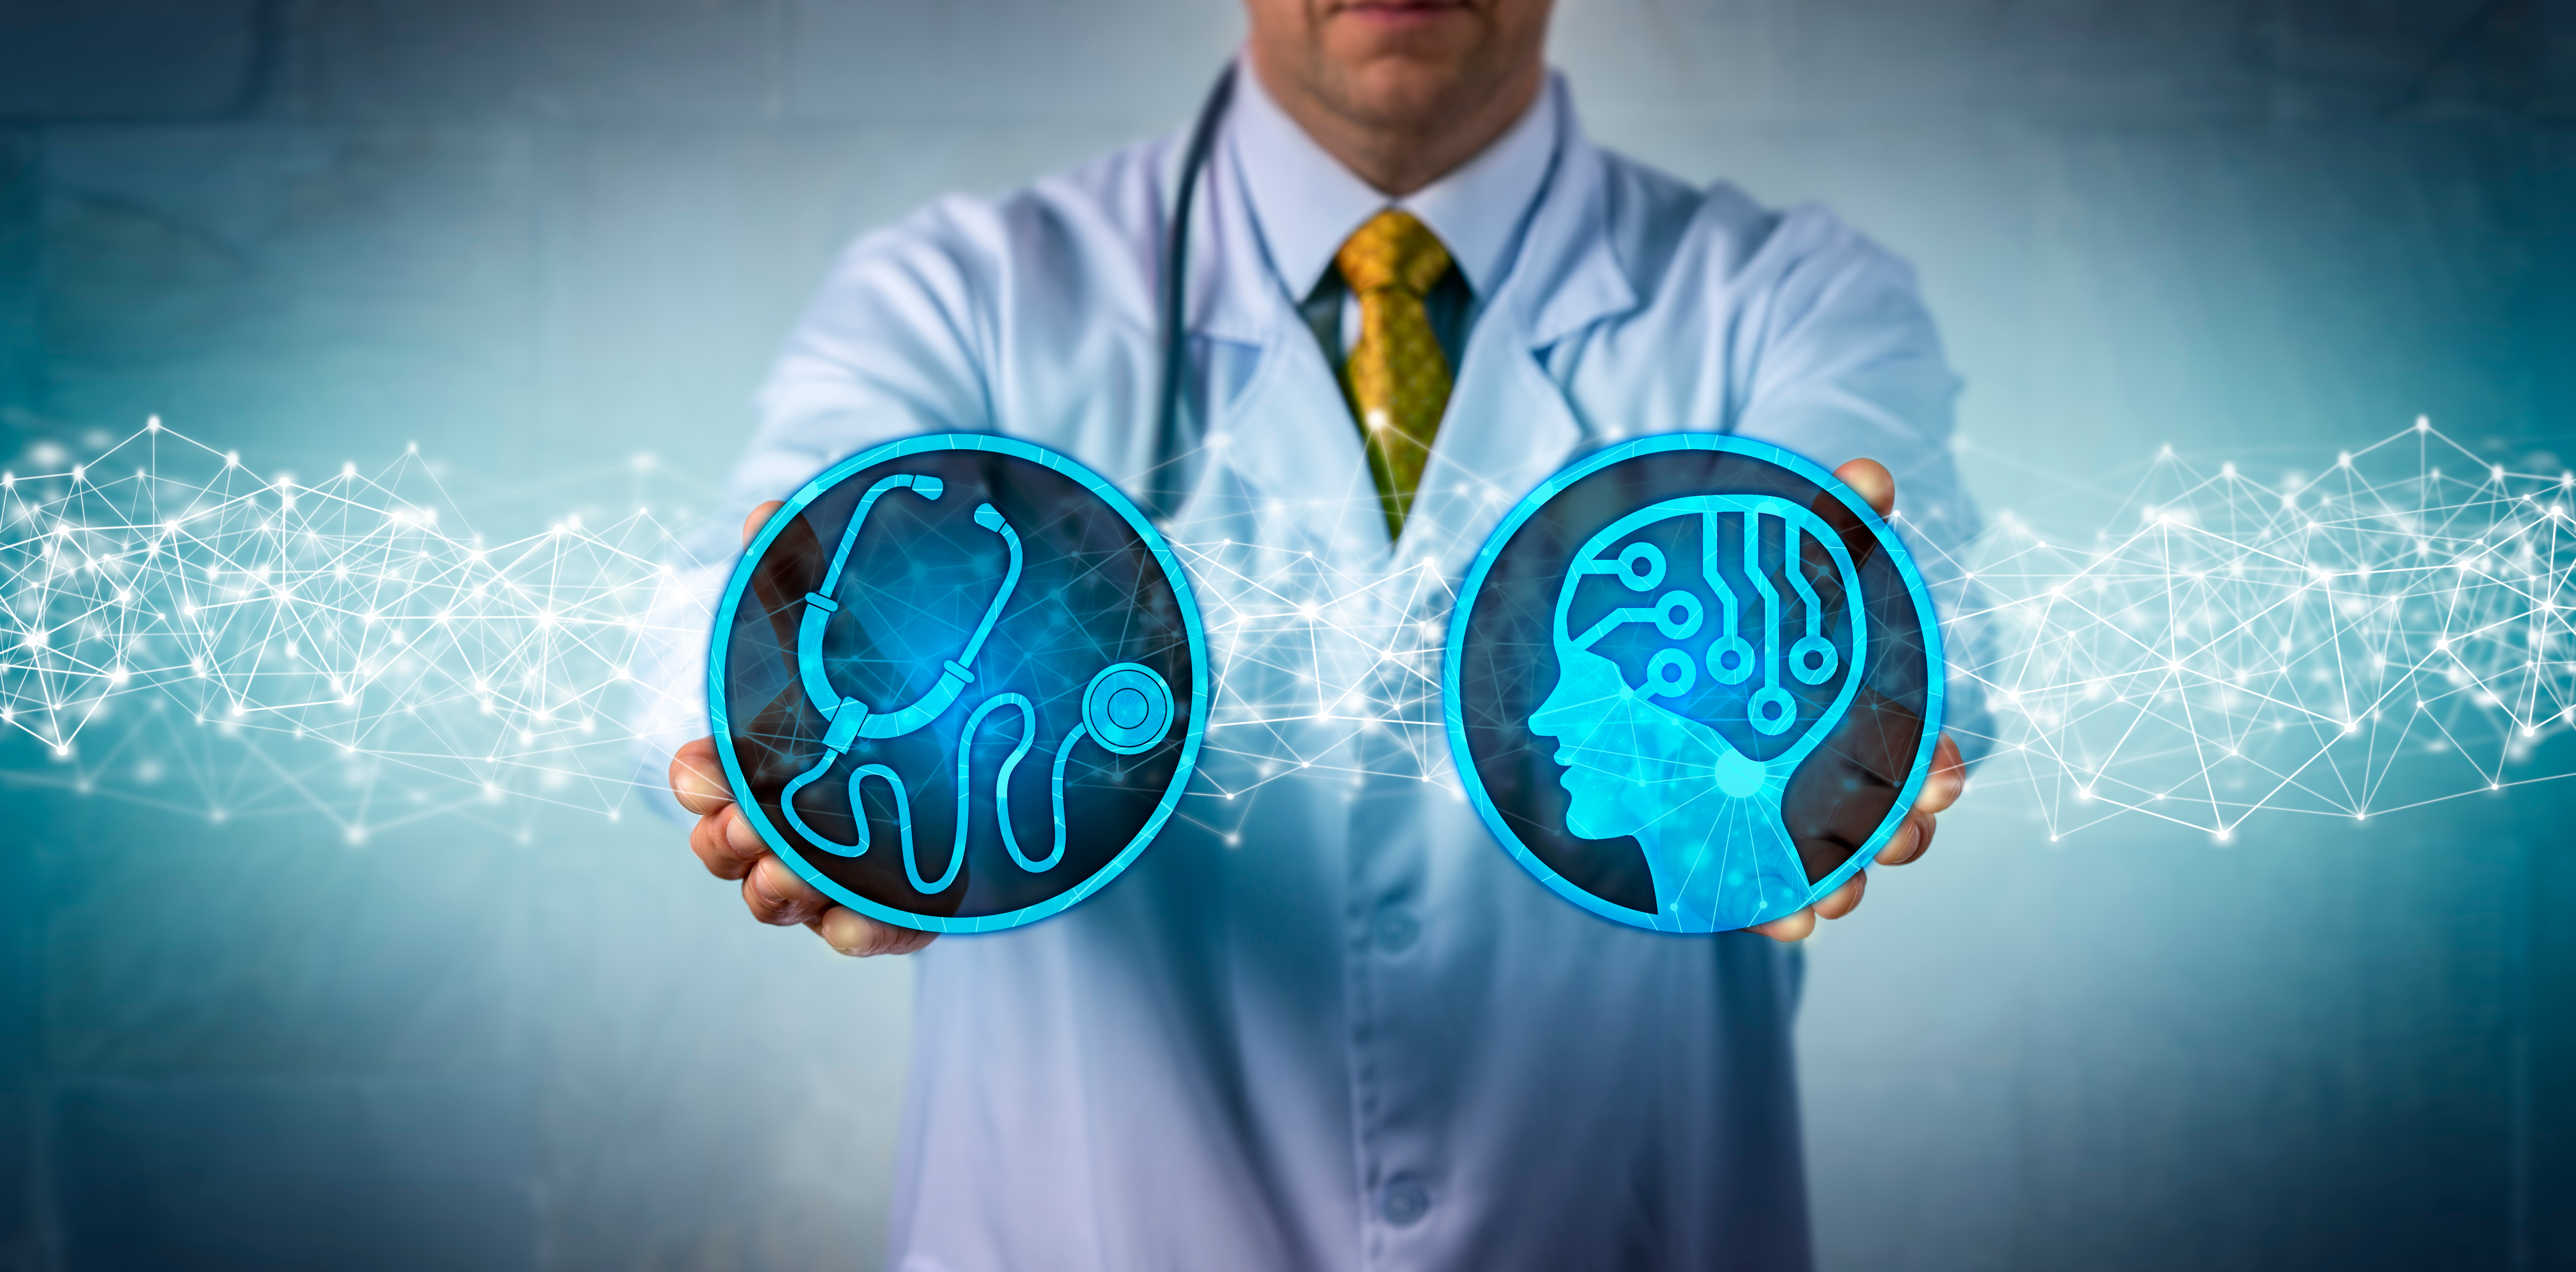 use of artificial intelligence by doctors to support patients